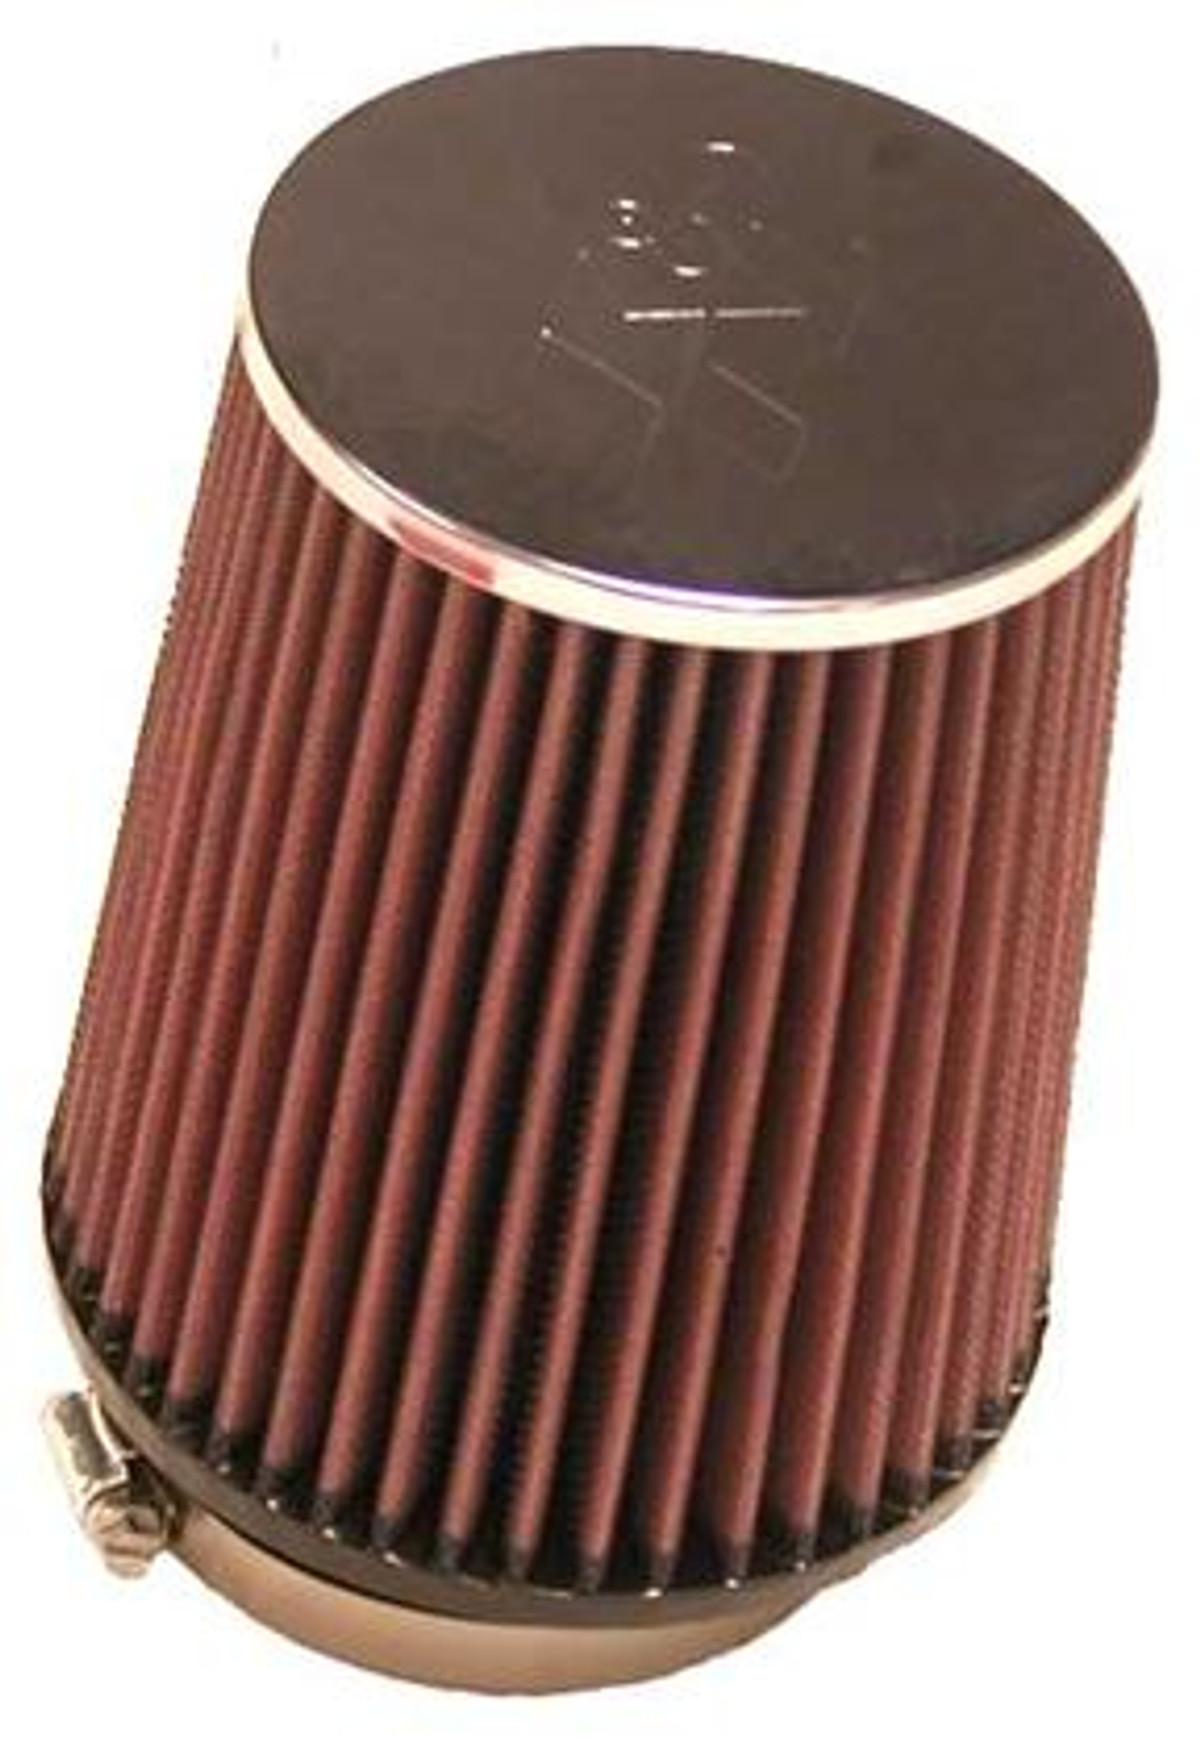 Premium RC-9510 Shape: Round Tapered K/&N Universal Clamp-On Air Filter: High Performance Replacement Engine Filter: Flange Diameter: 2.5 In Flange Length: 0.75 In Filter Height: 5.9375 In